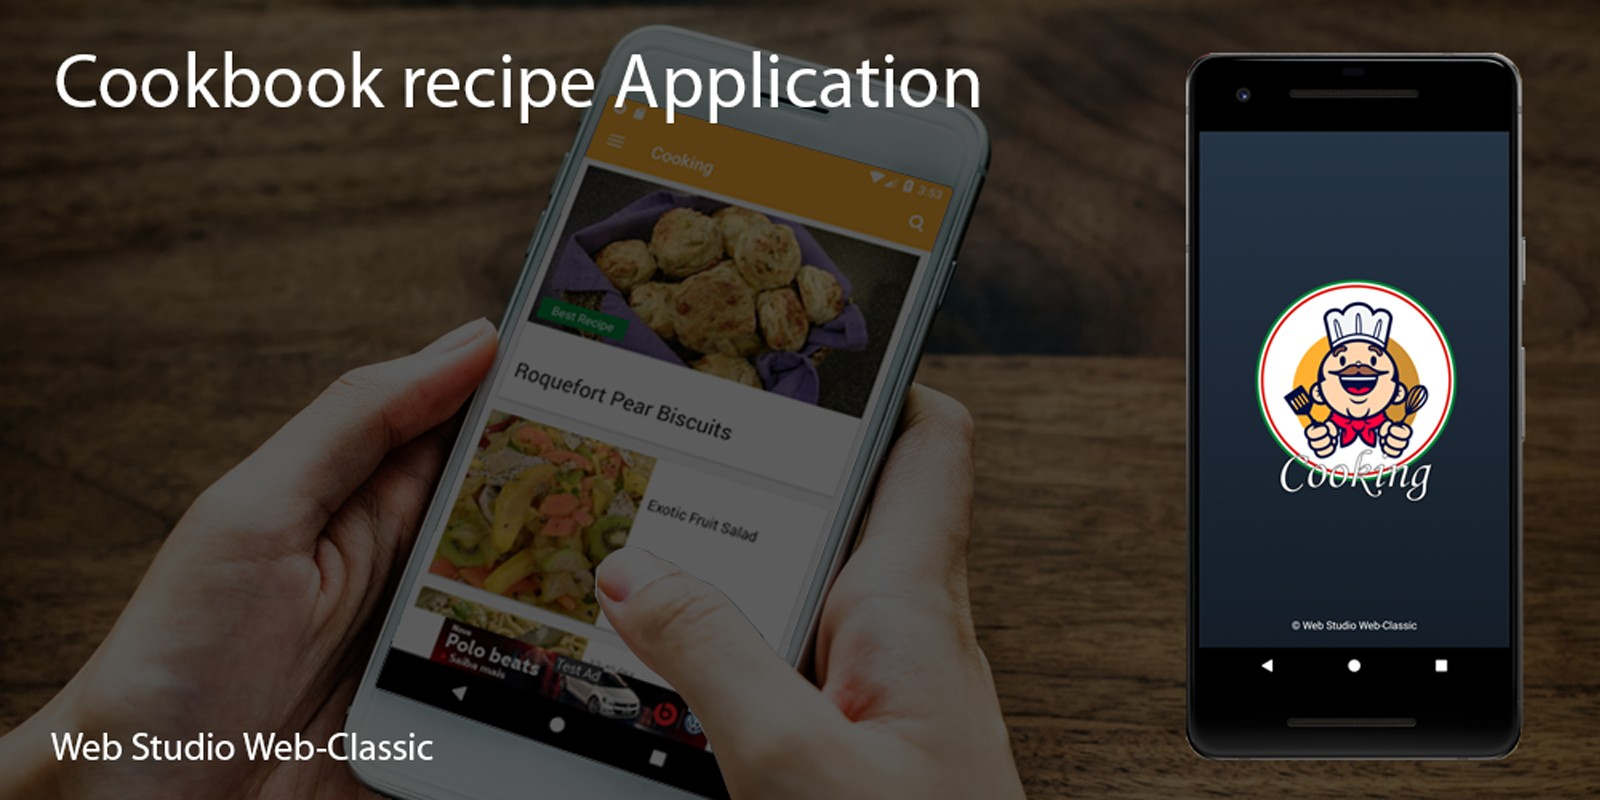 Culinary Recipe Book - Android Source Code